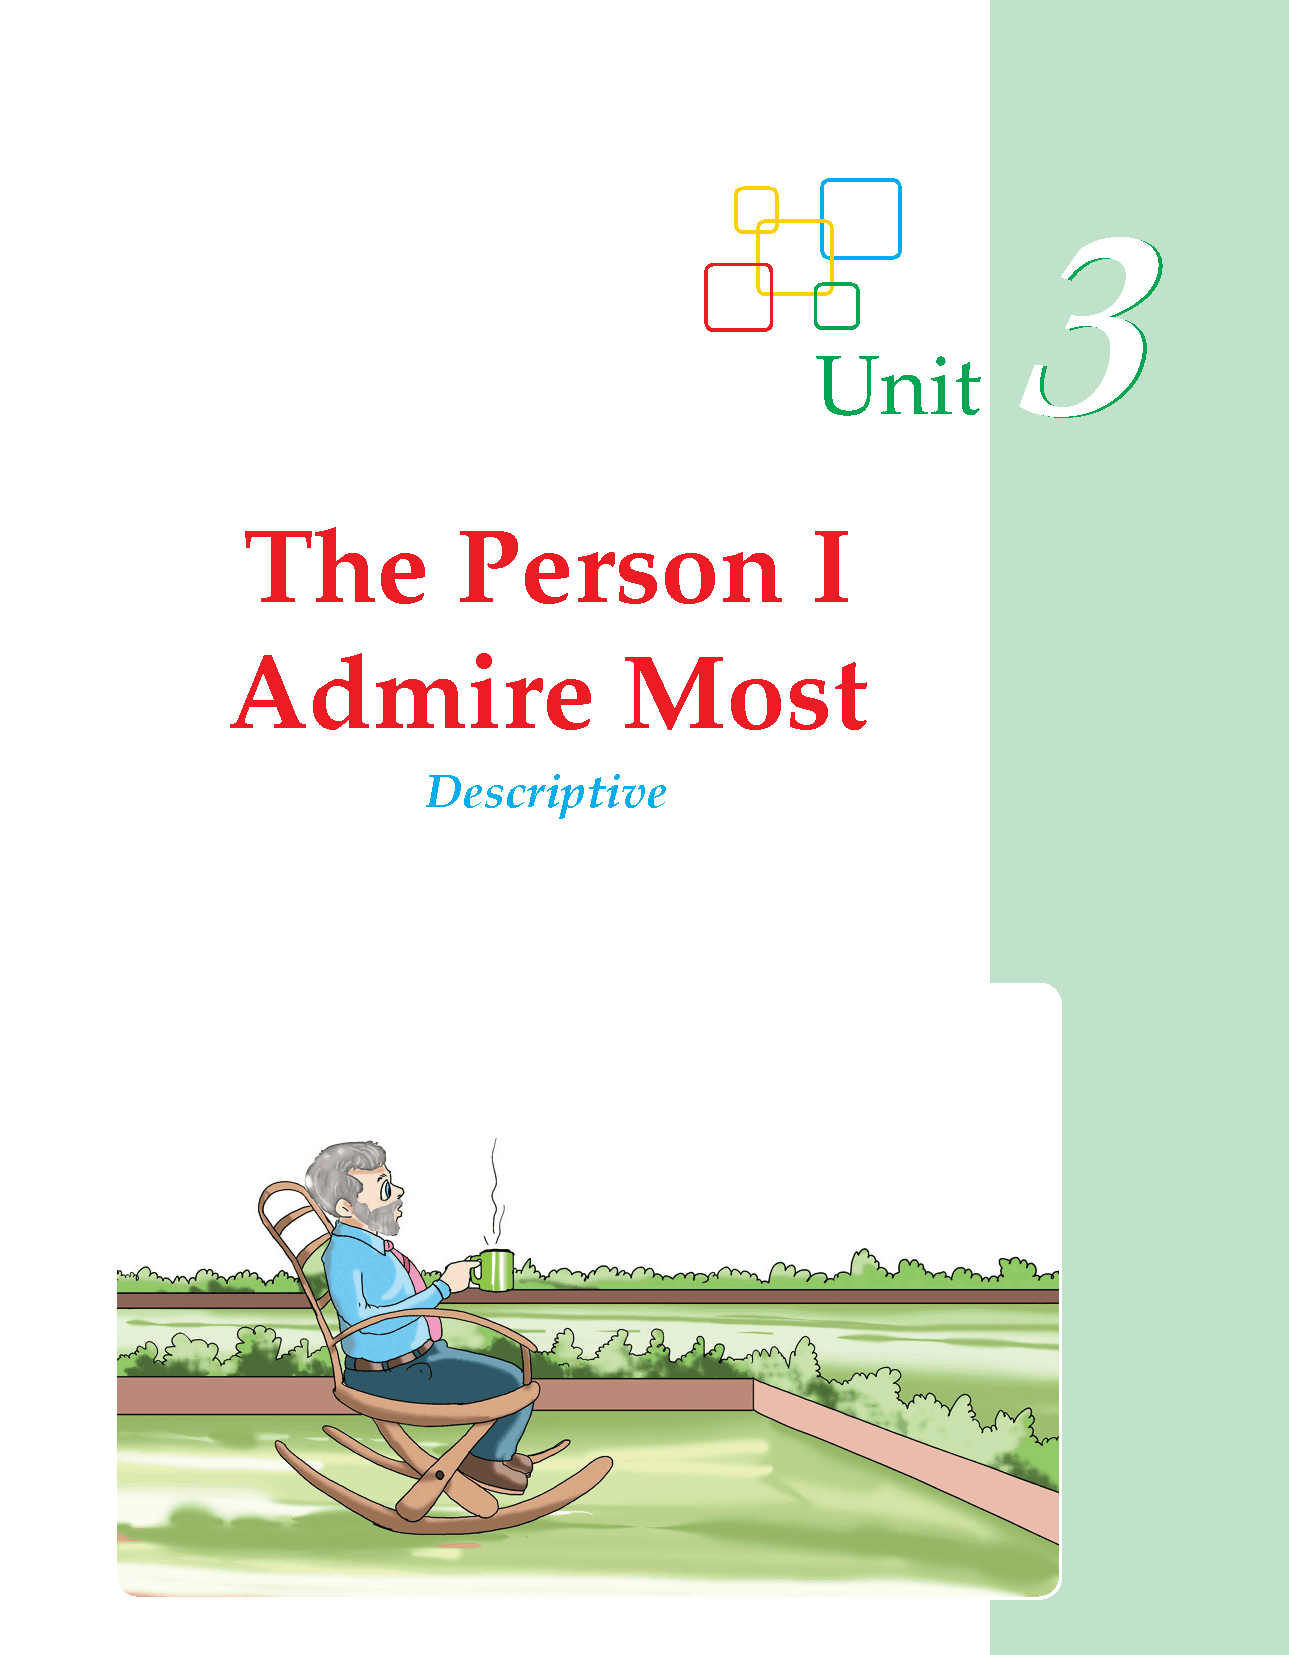 essay personality that i admire A person who i admire why i am who i am personality description essay place, we retain a stable sense of ourselves, our past, and our goals for the future.